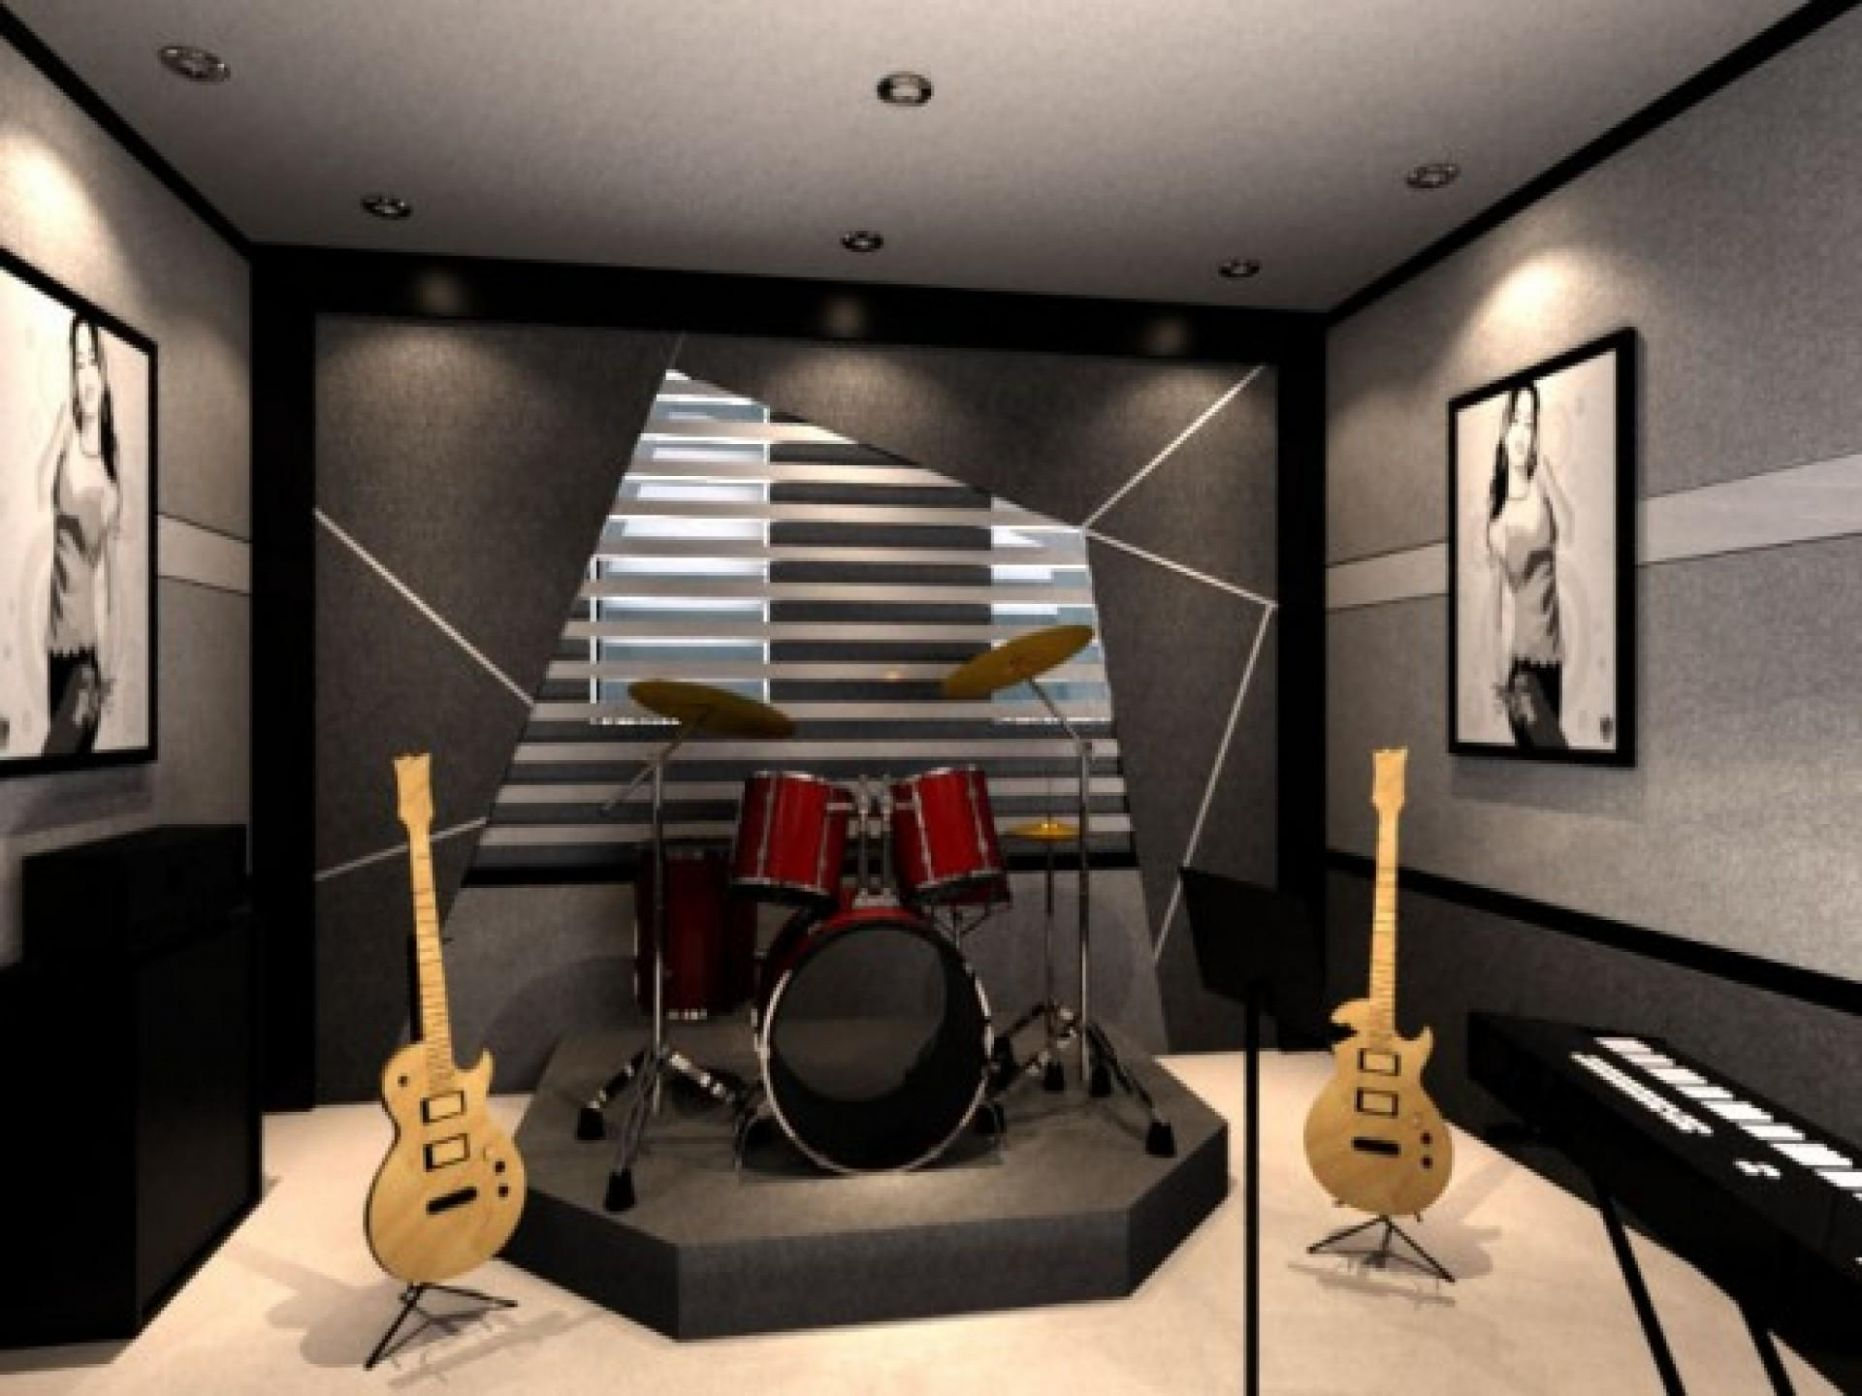 10 Comfy Music Home Decor Ideas That You Shouldn't Miss Trends in ...